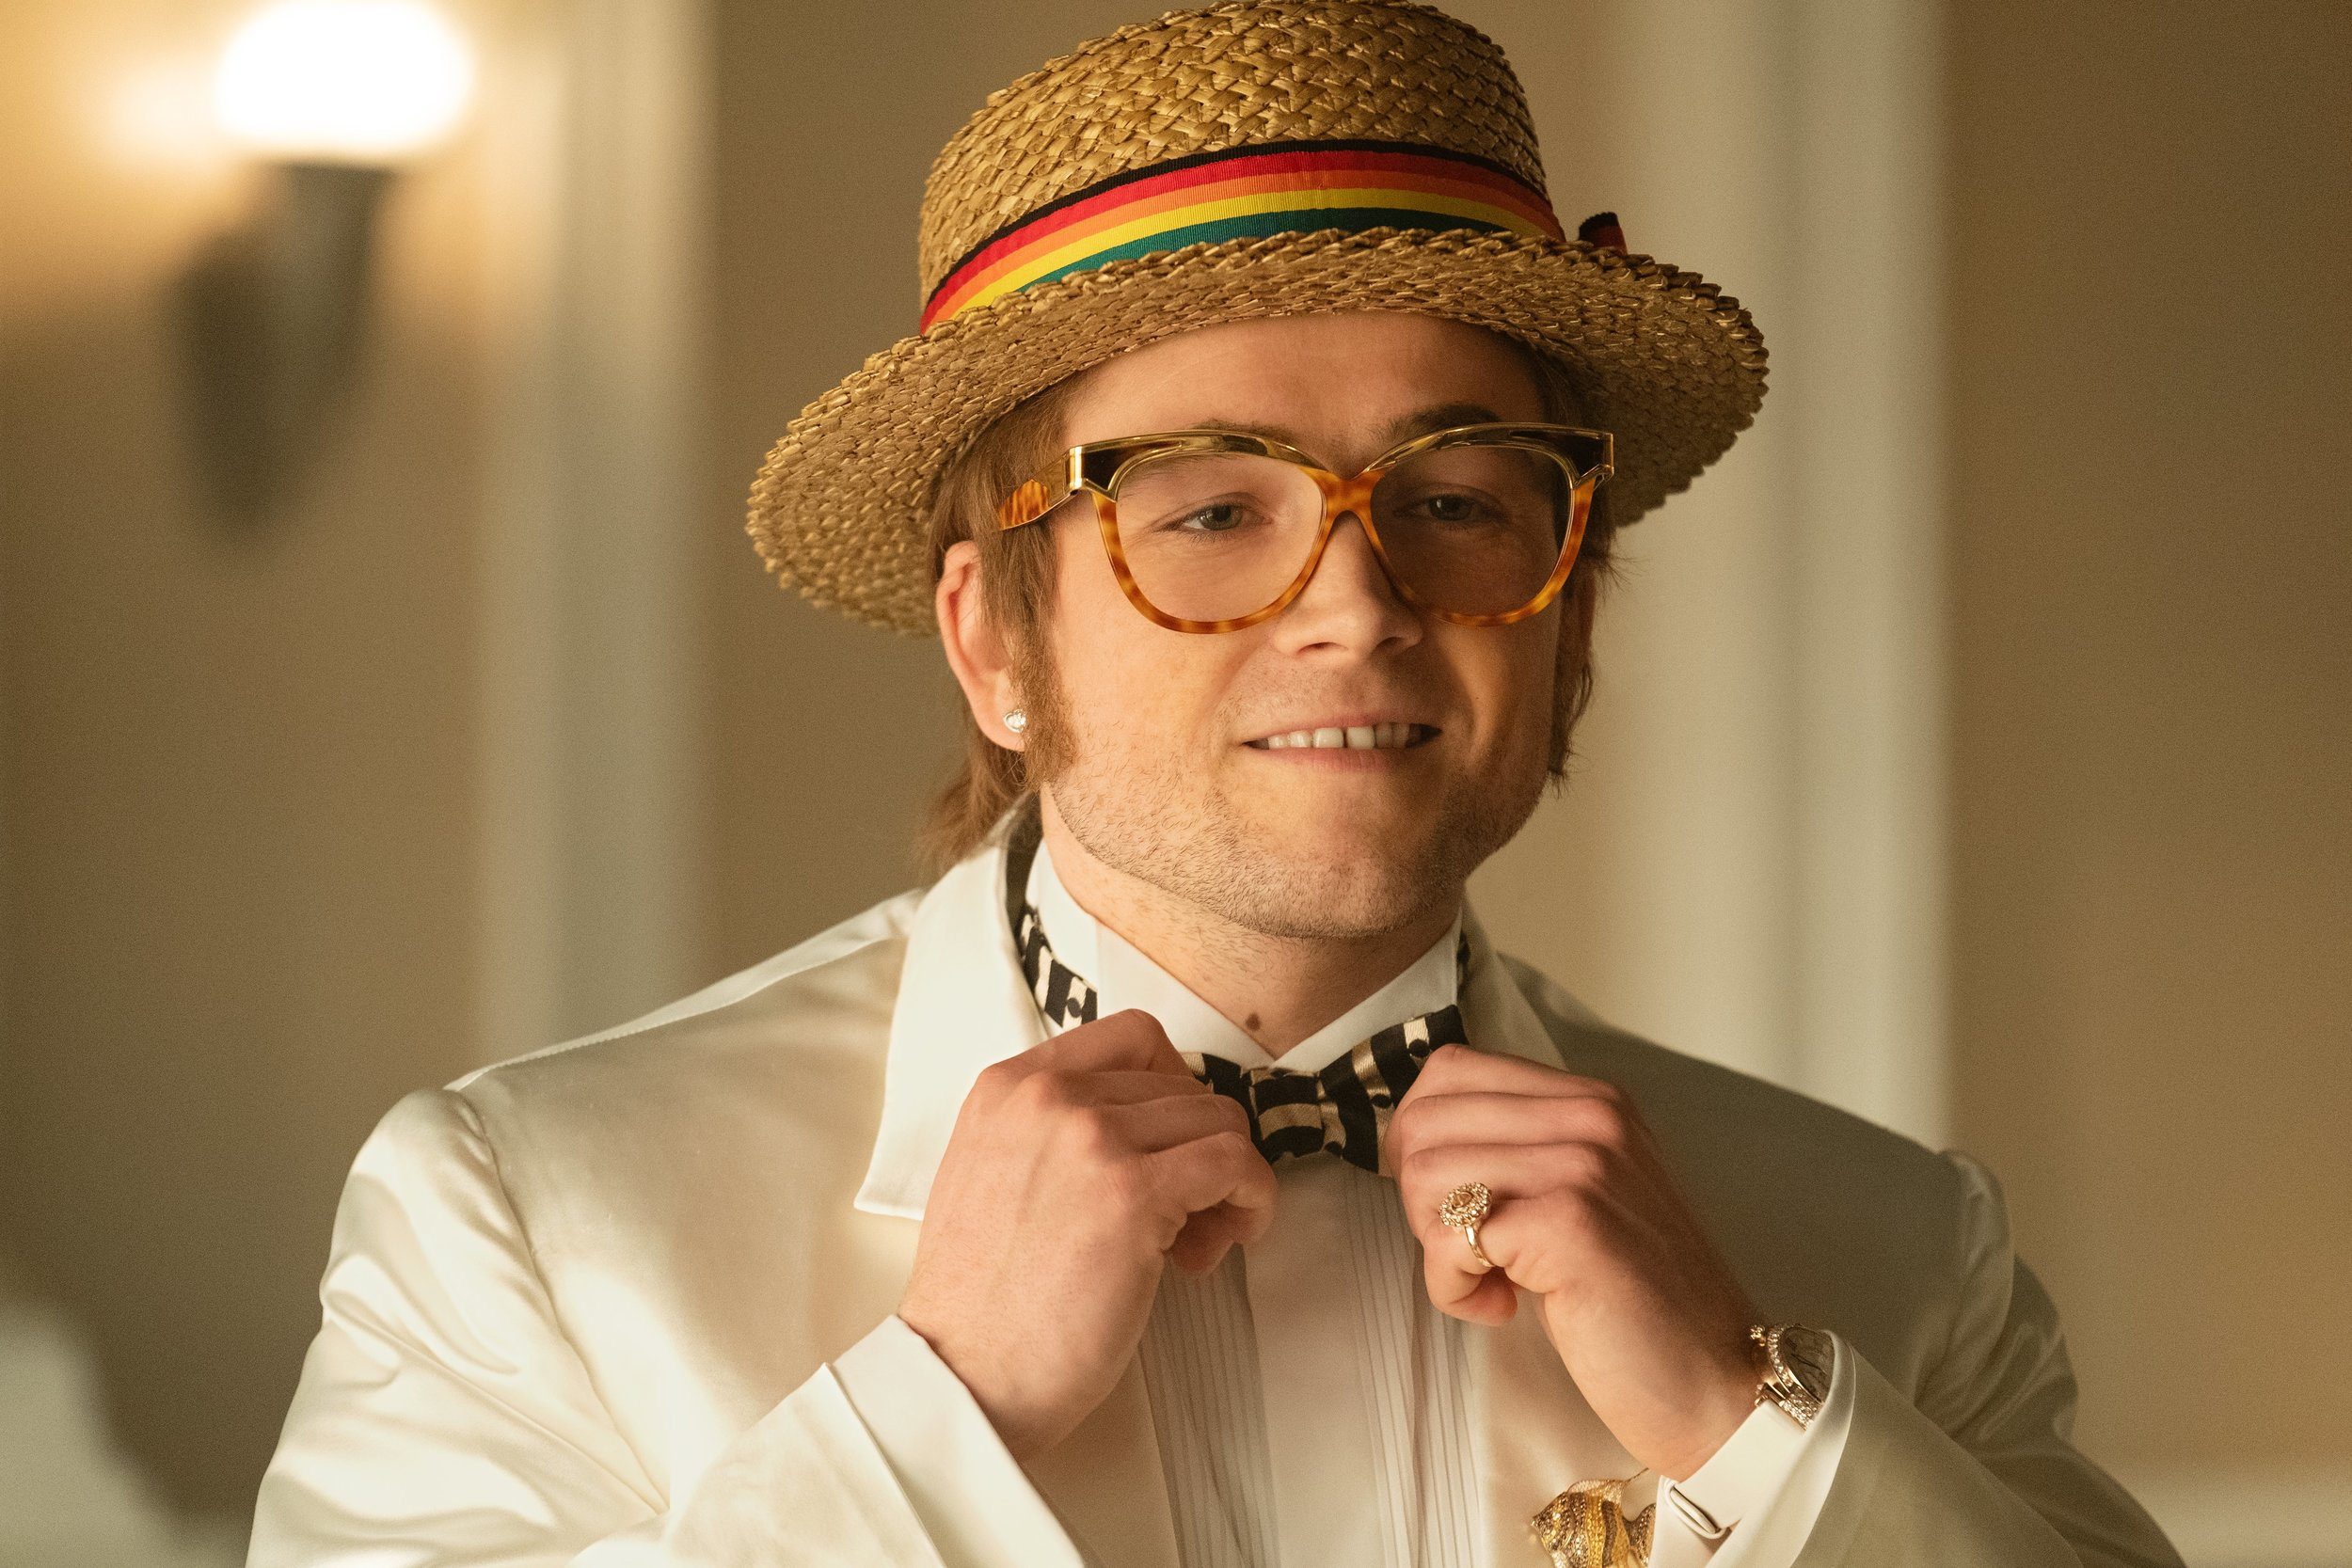 Taron Egerton is ready for his close-up as Elton John in Rocketman.